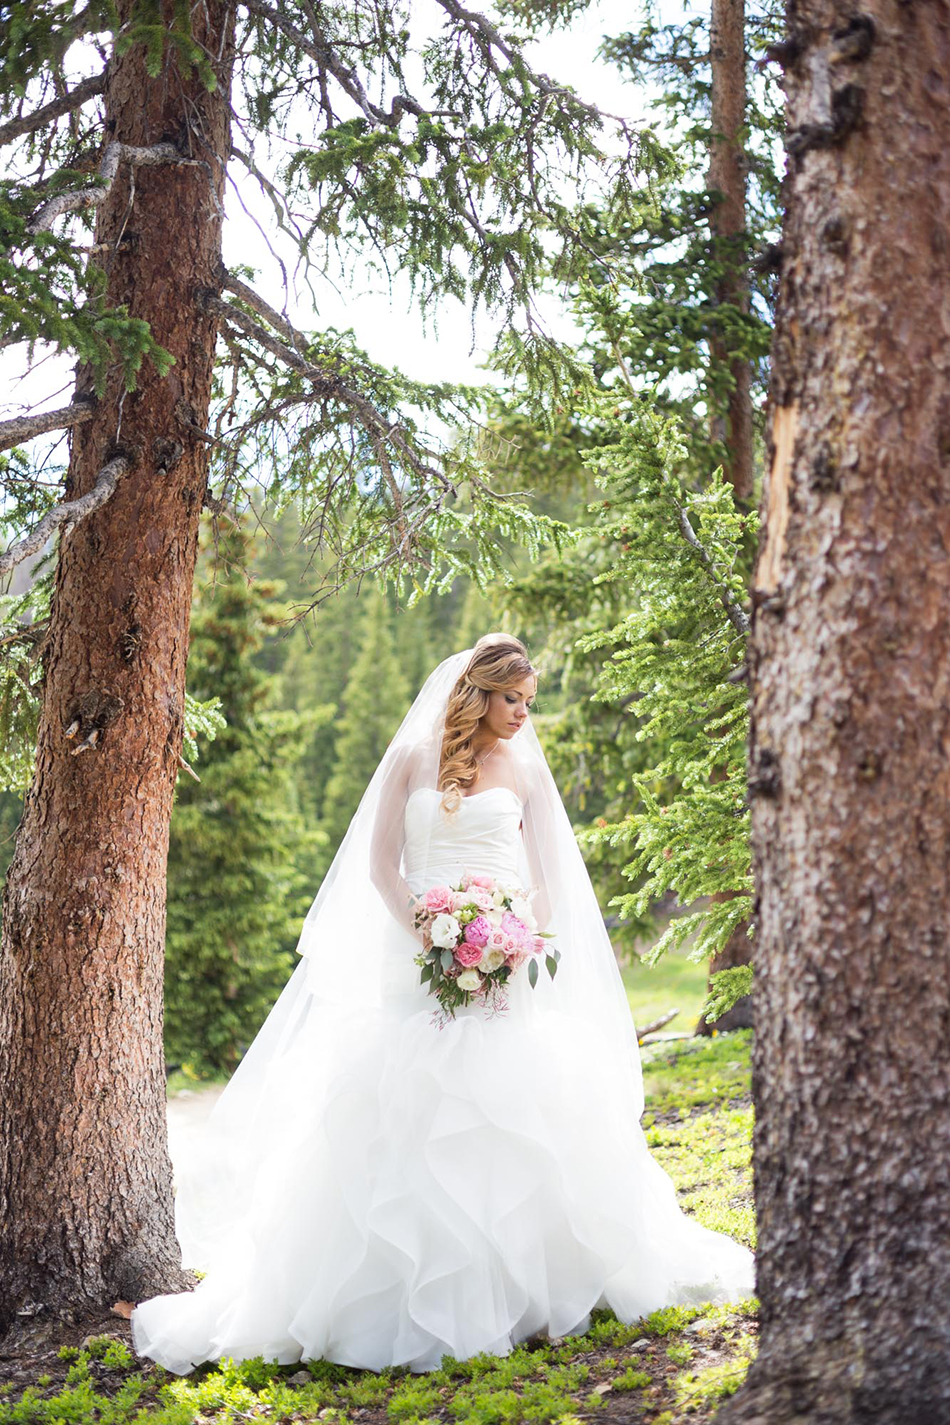 keystone_realwedding_08.jpg